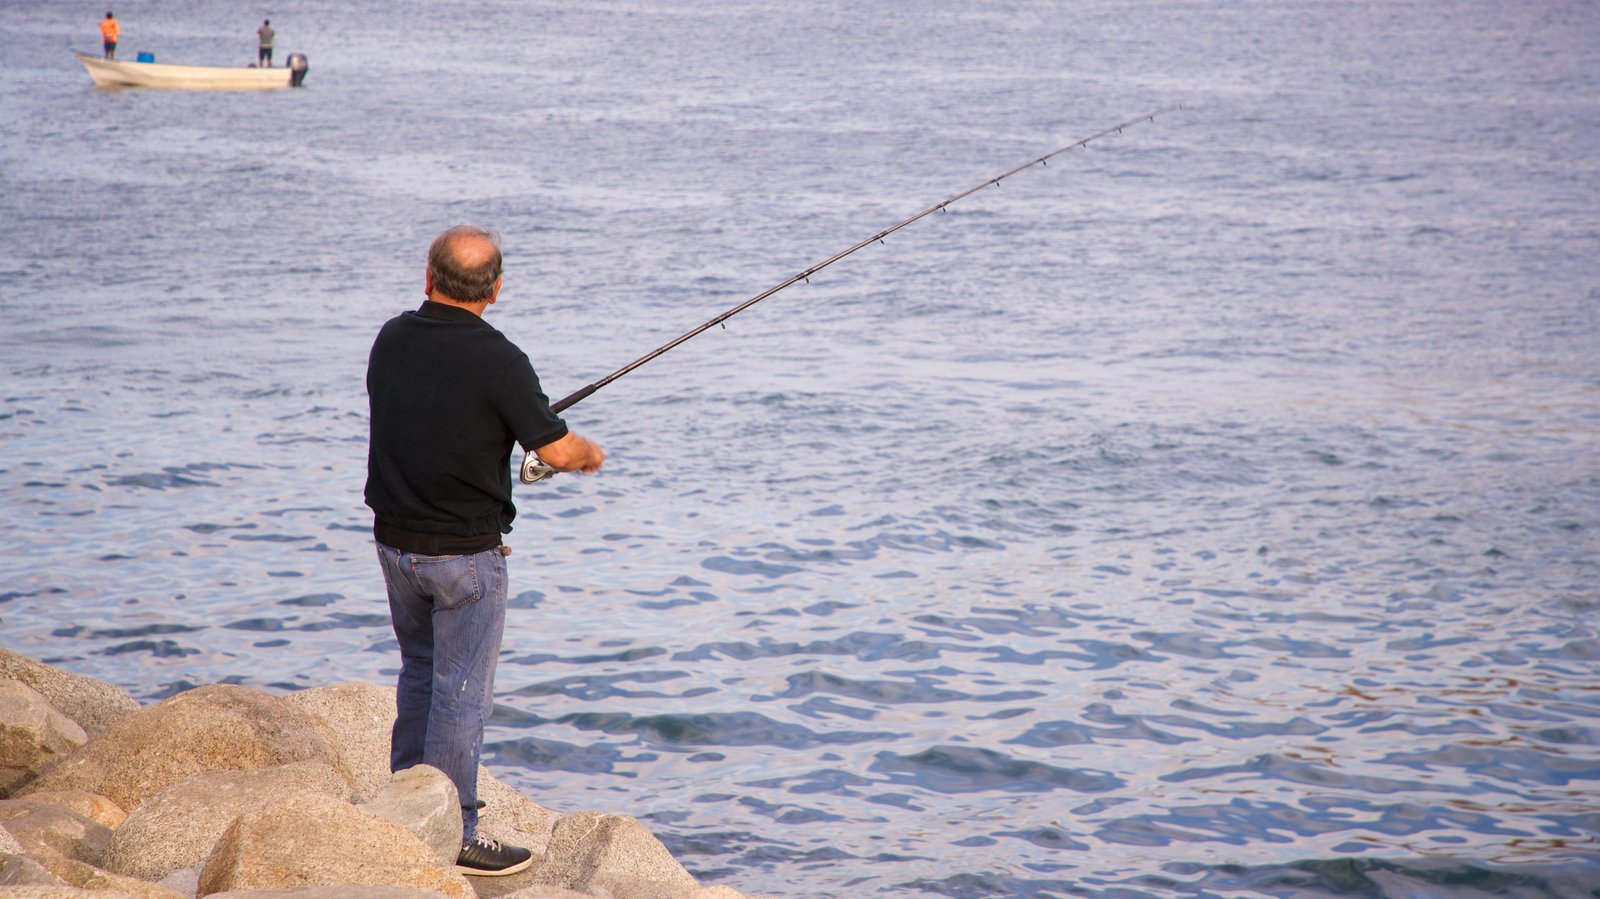 San Lucas Bay featuring fishing and general coastal views as well as an individual male